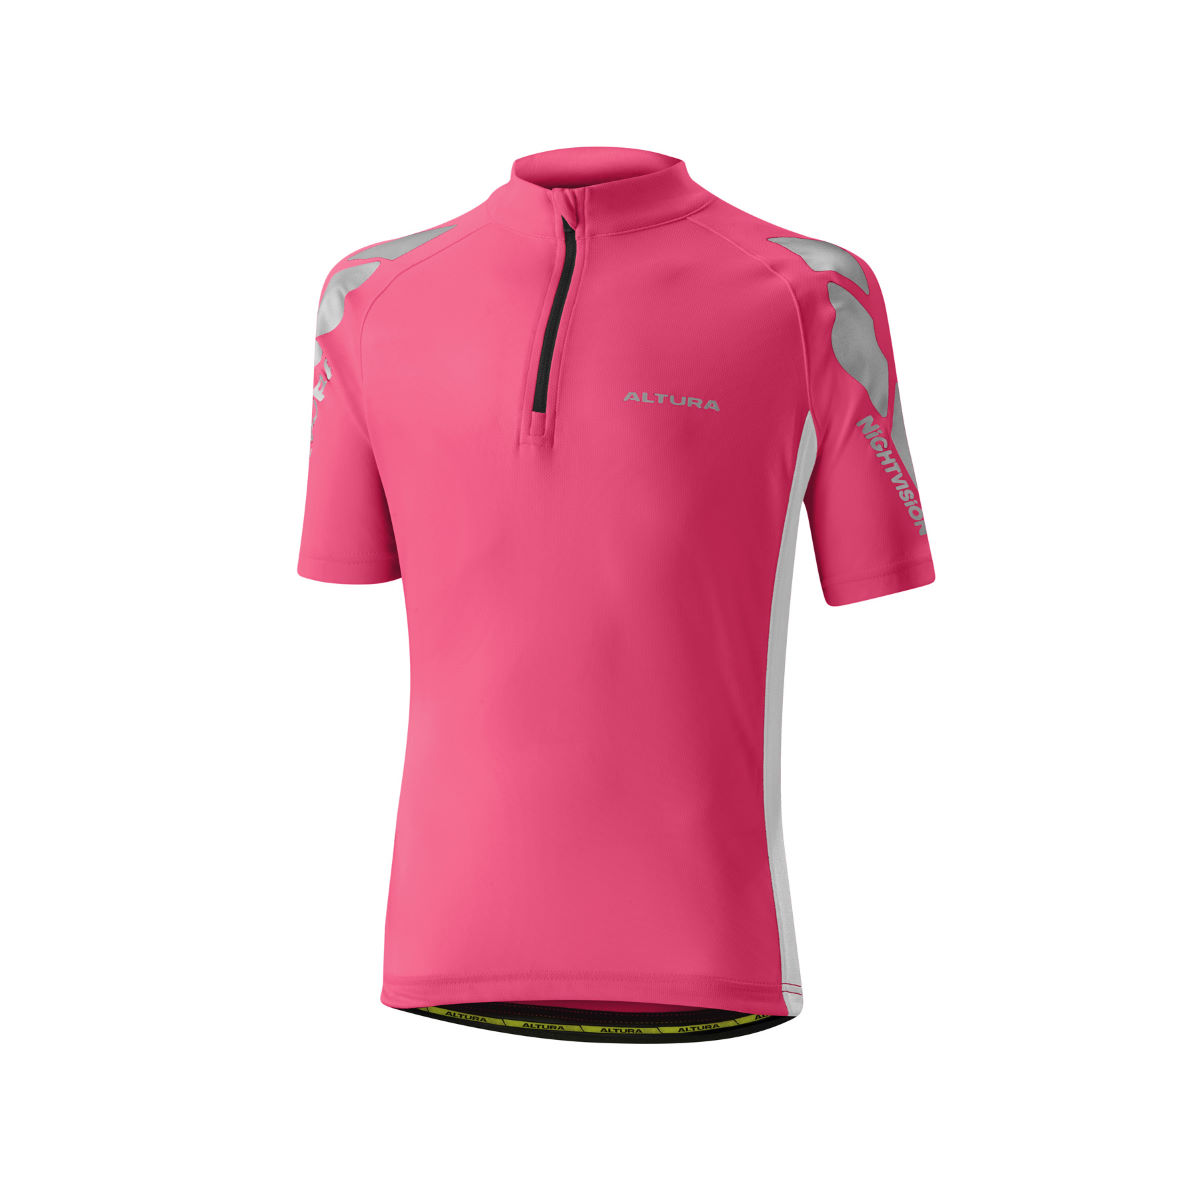 Maillot Enfant Altura Night Vision (manches courtes) - 10-12 years